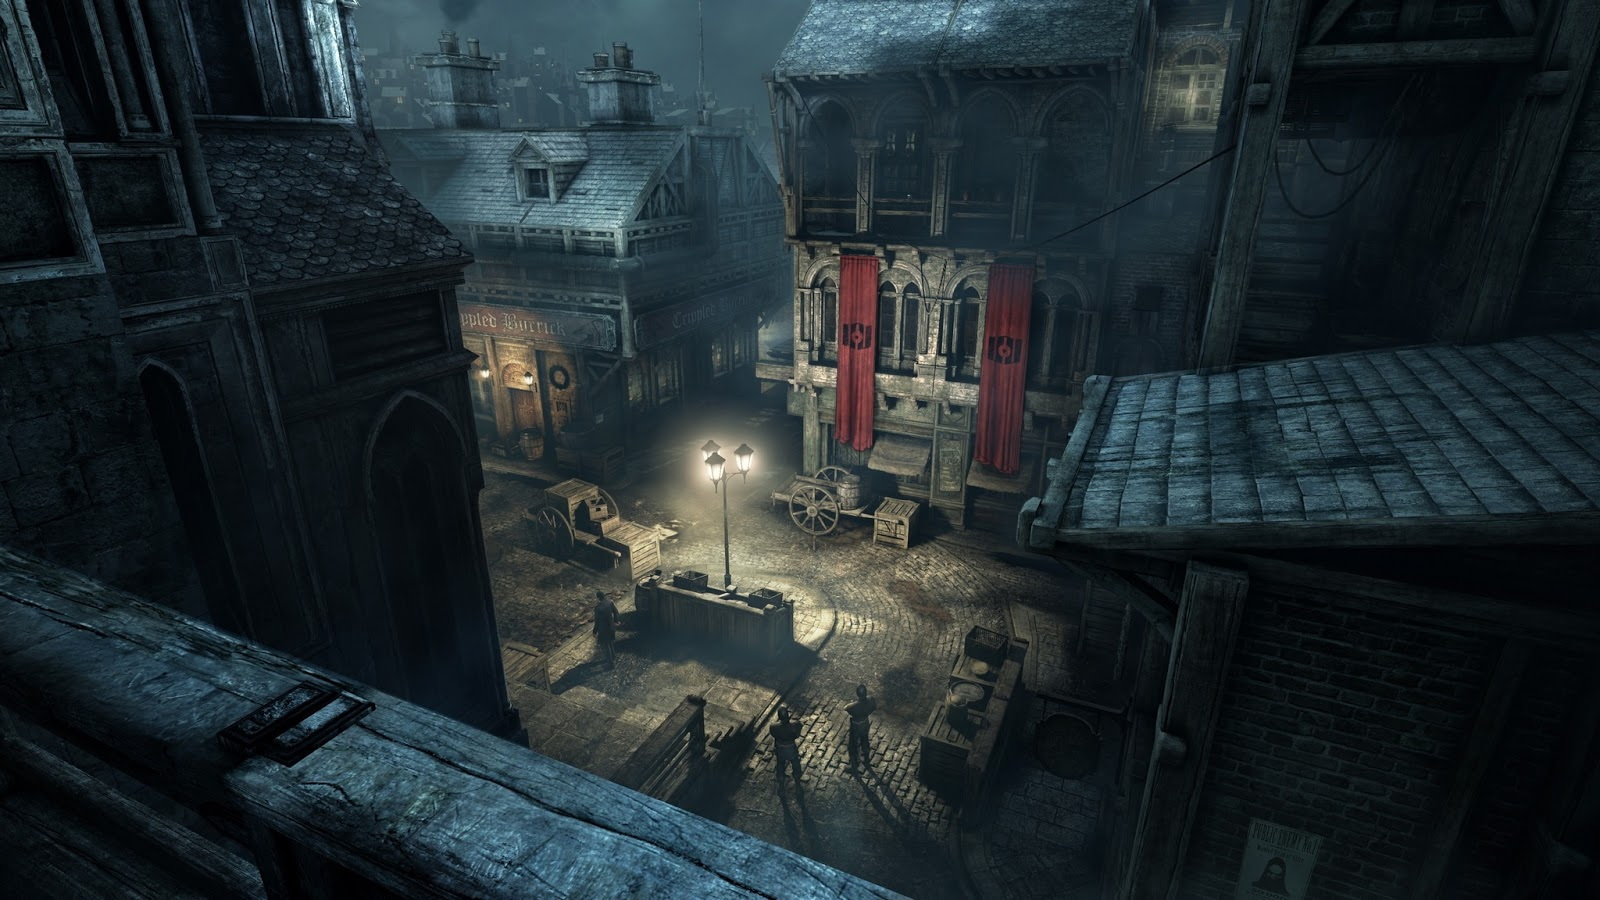 Thief screenshot